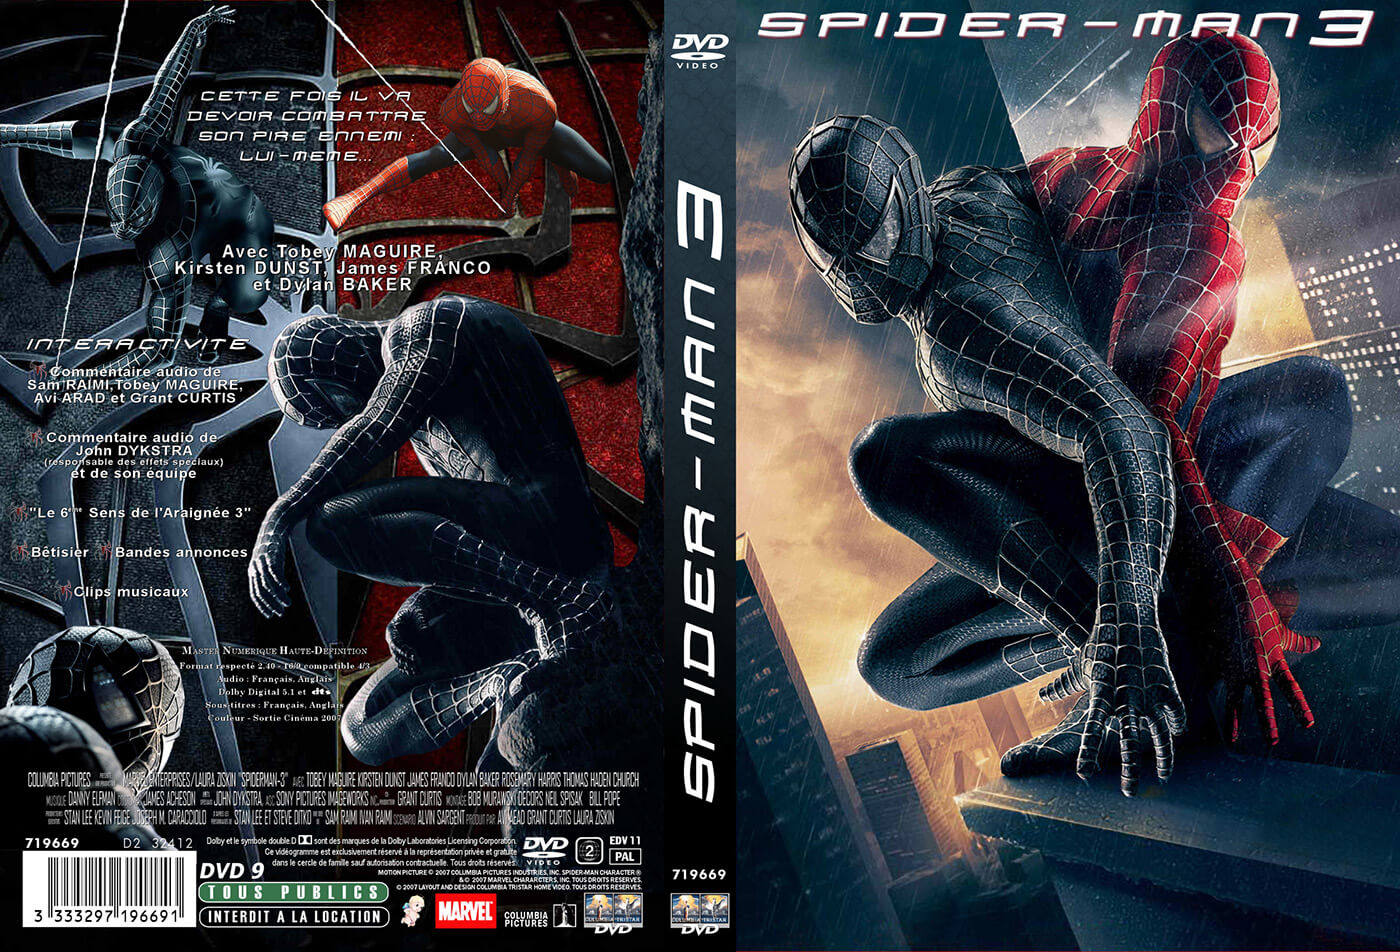 spiderman 3 pc game free download full version iso